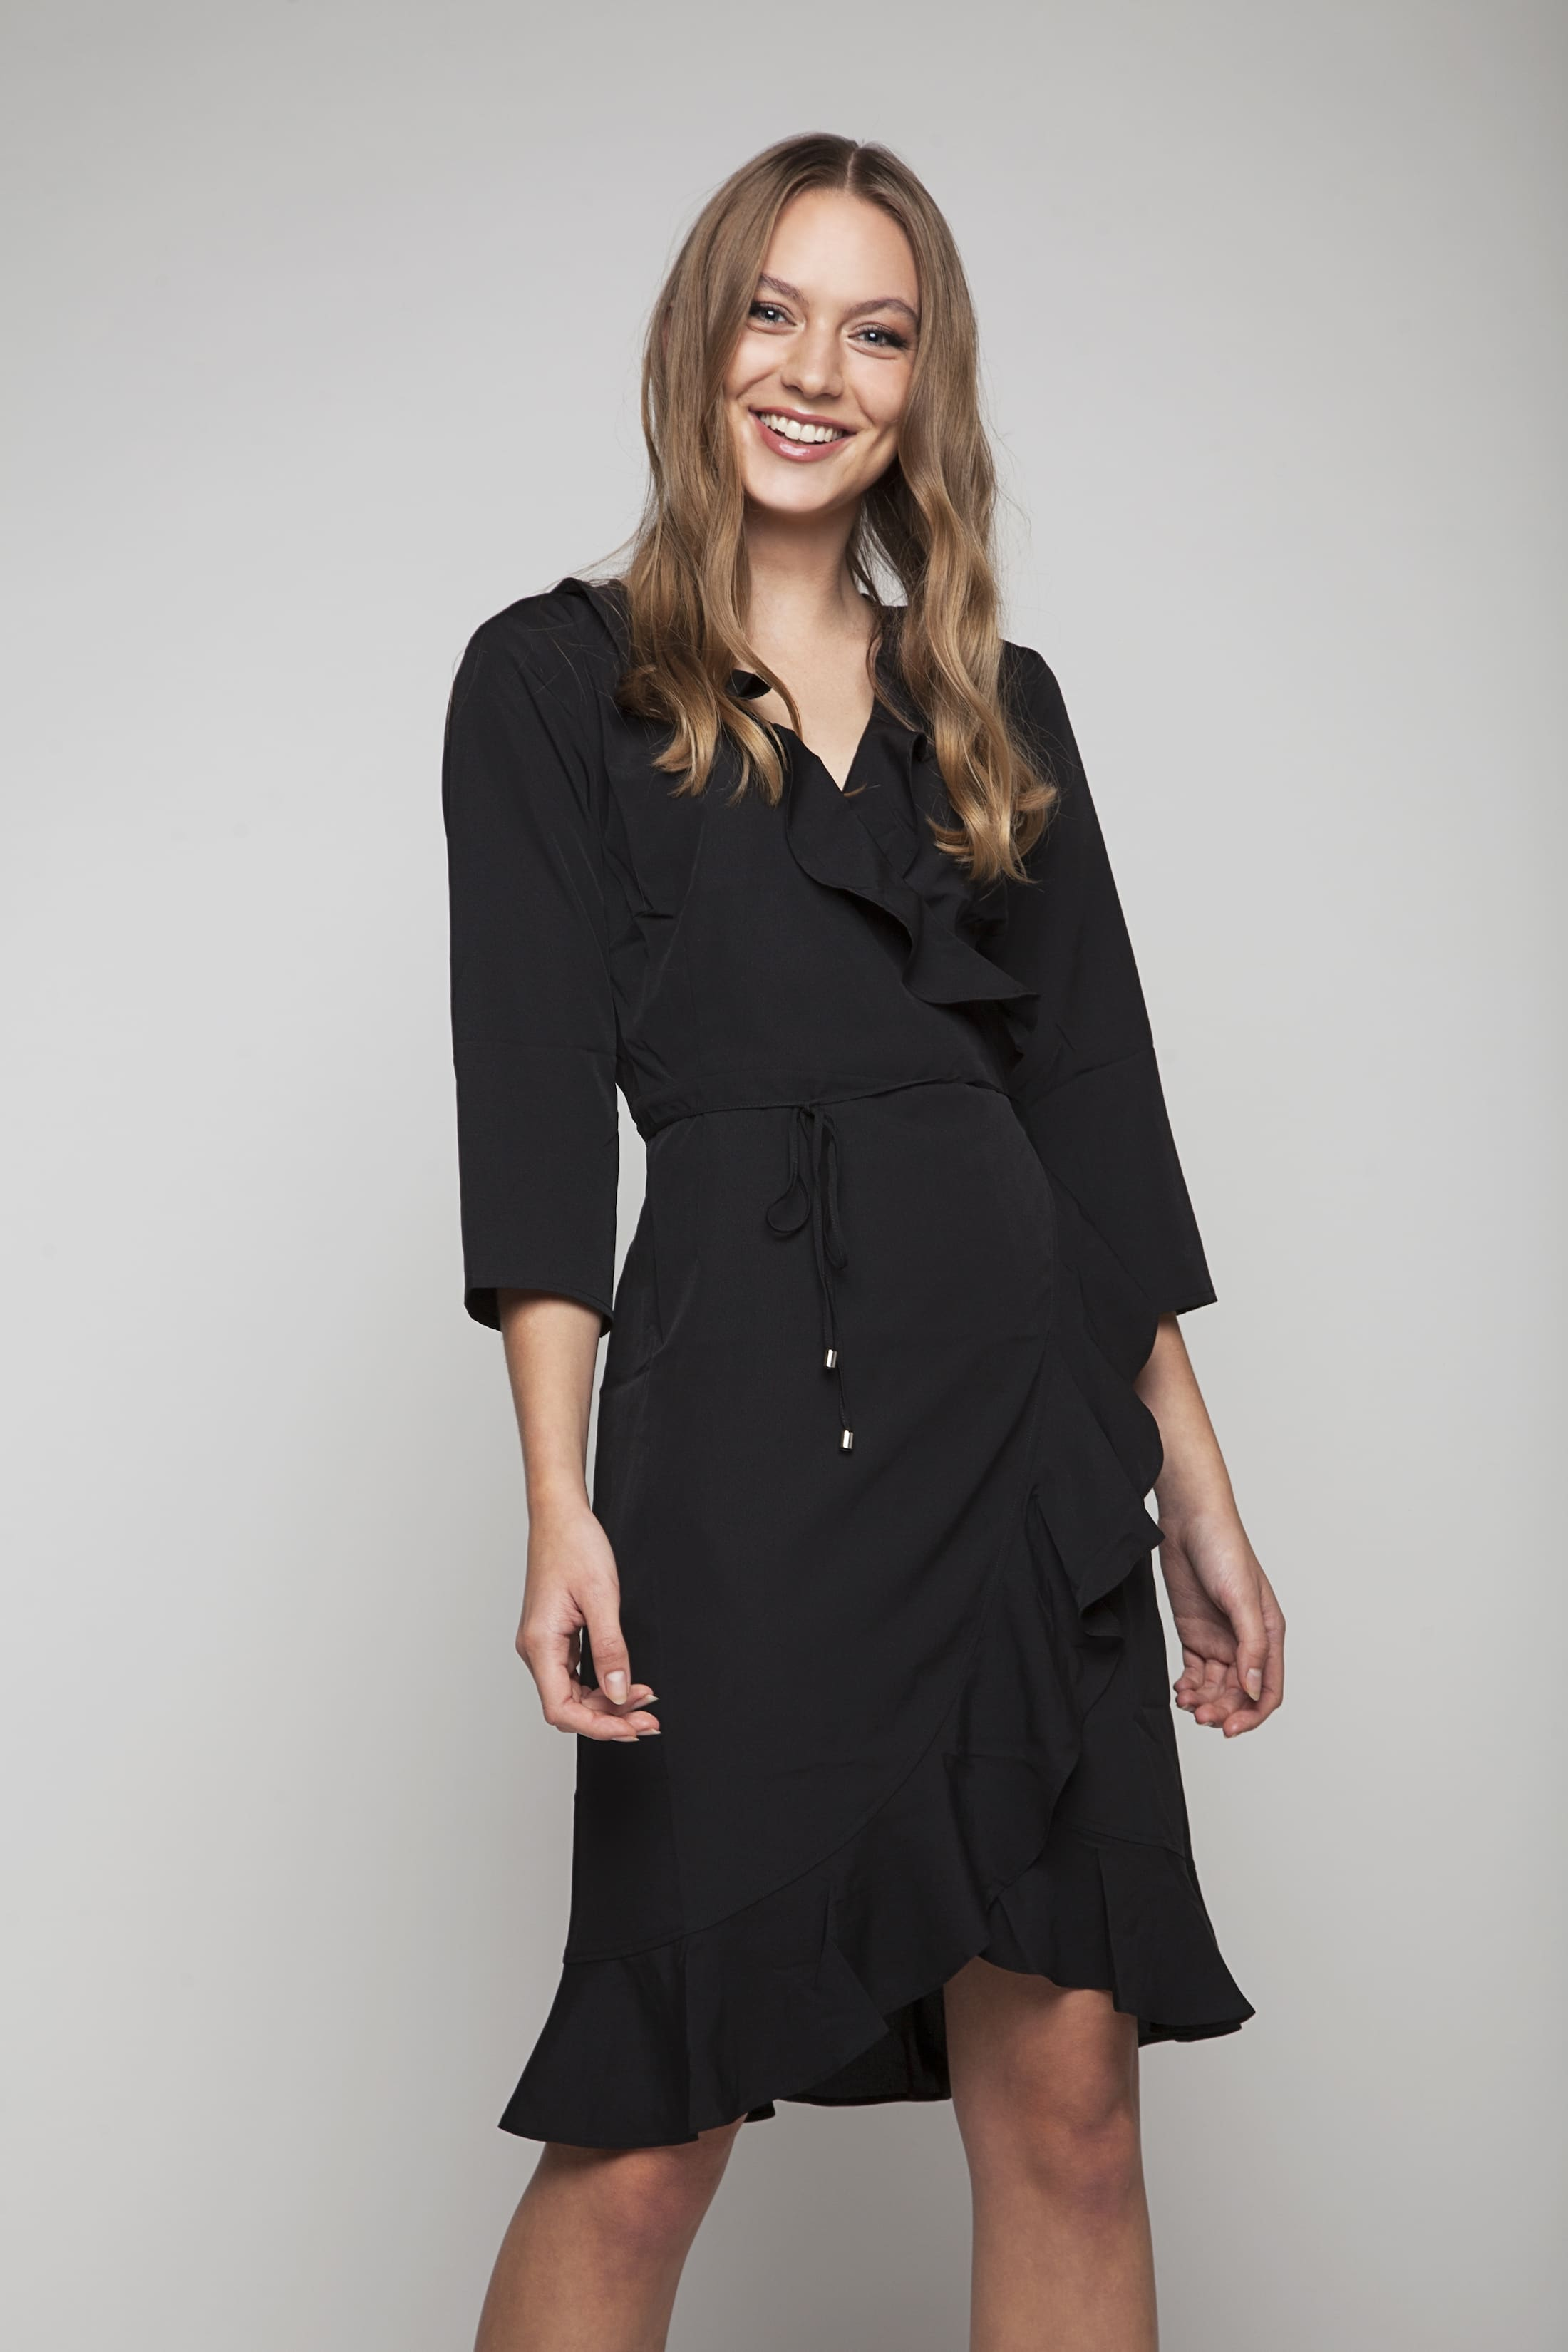 Black wrapdress with silver string aglets